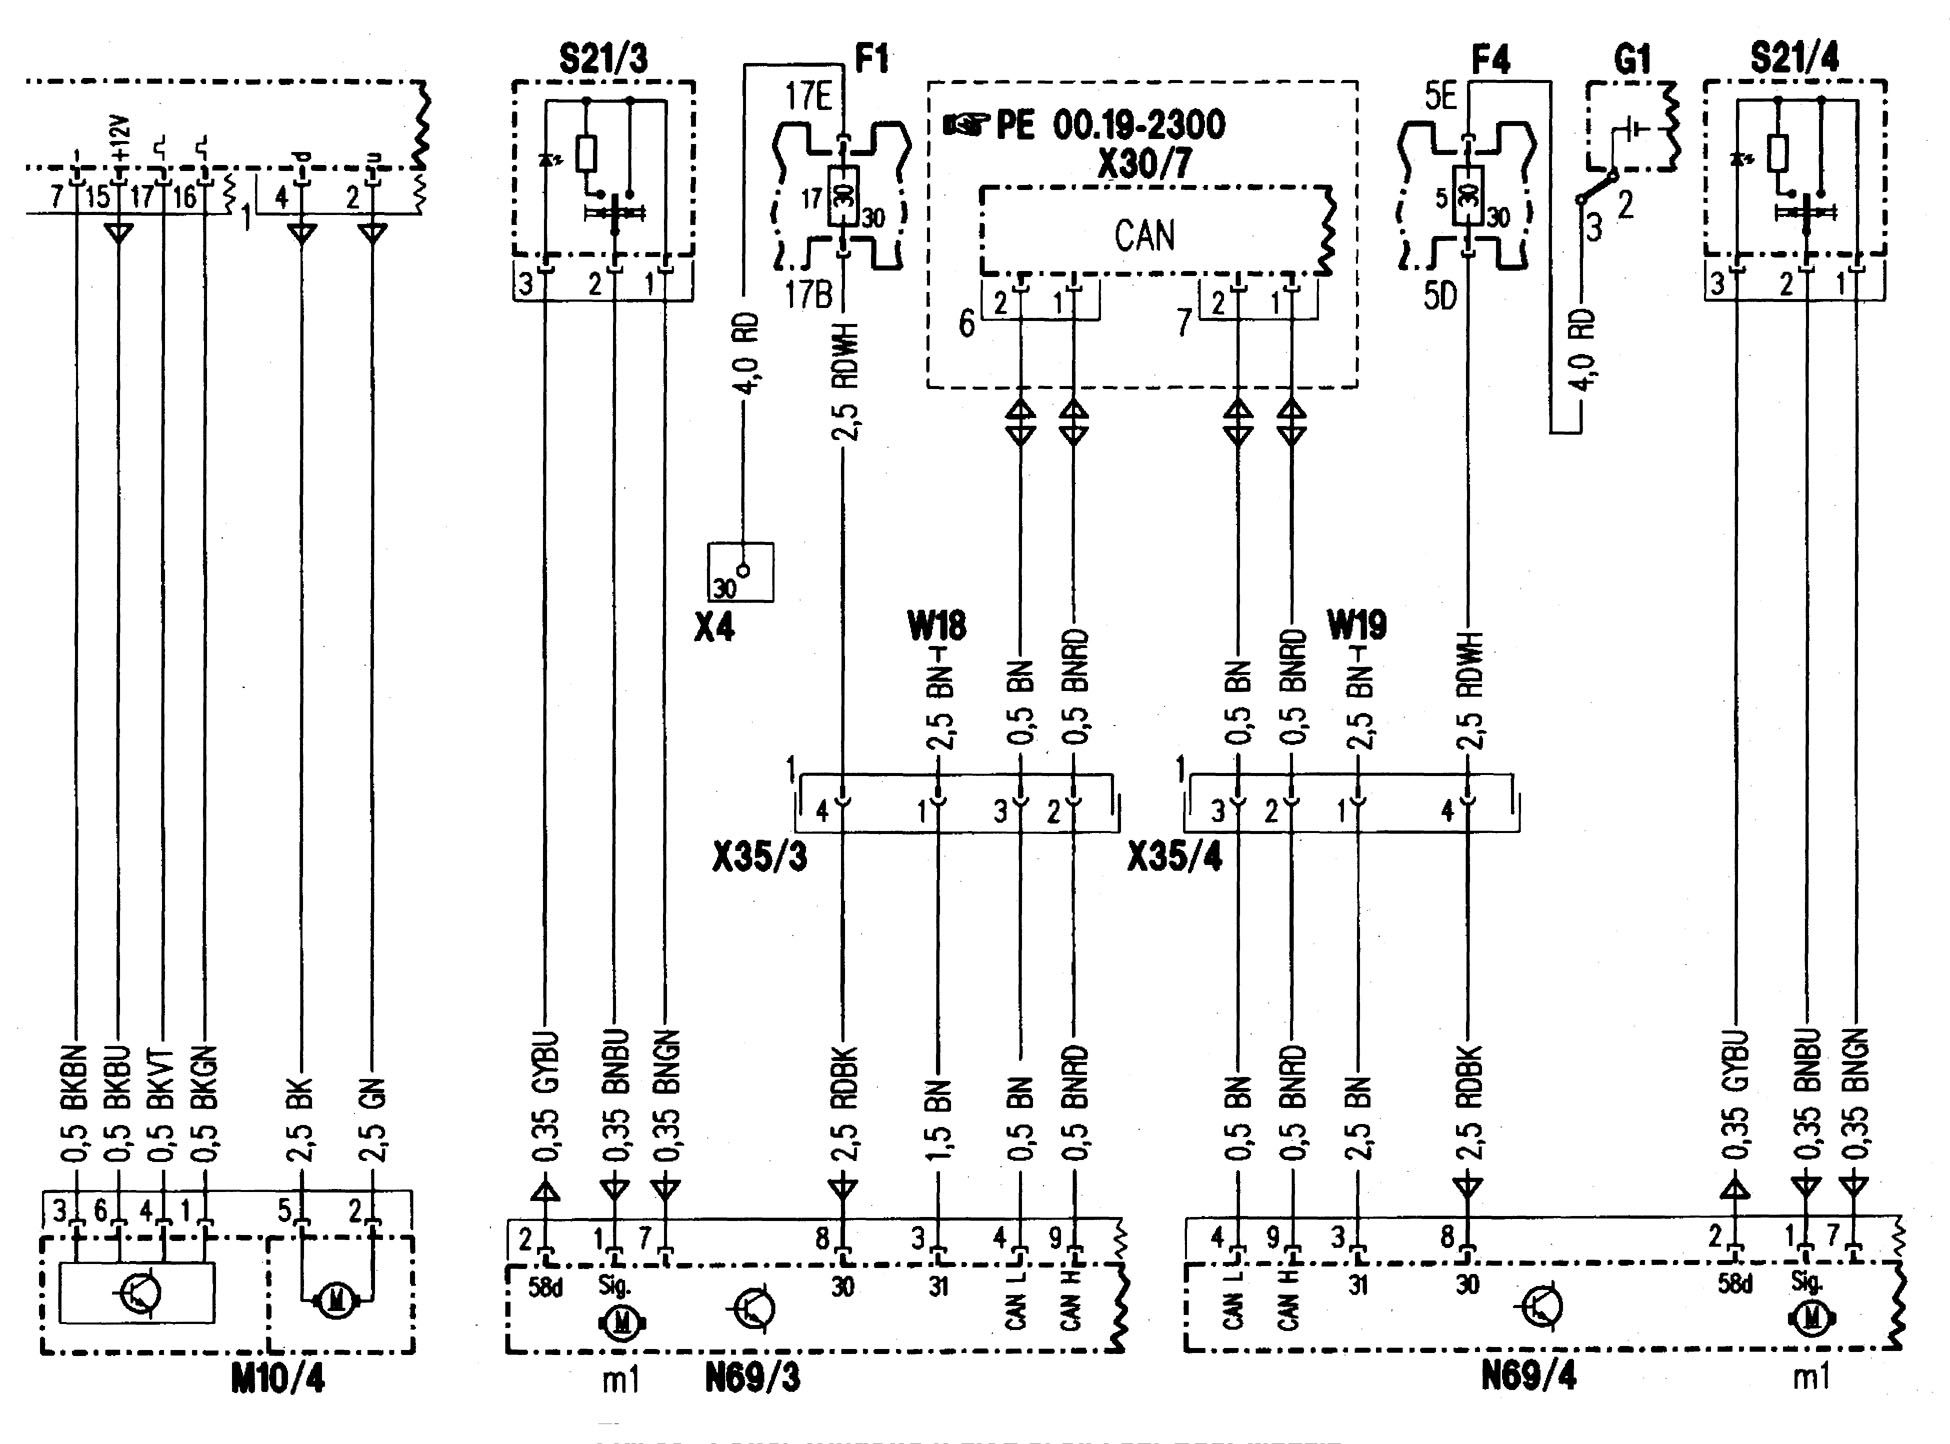 [SCHEMATICS_4FD]  Mercedes-Benz C280 (1998) - wiring diagrams - power windows -  Carknowledge.info | 98 C230 Wiring Diagram |  | Carknowledge.info